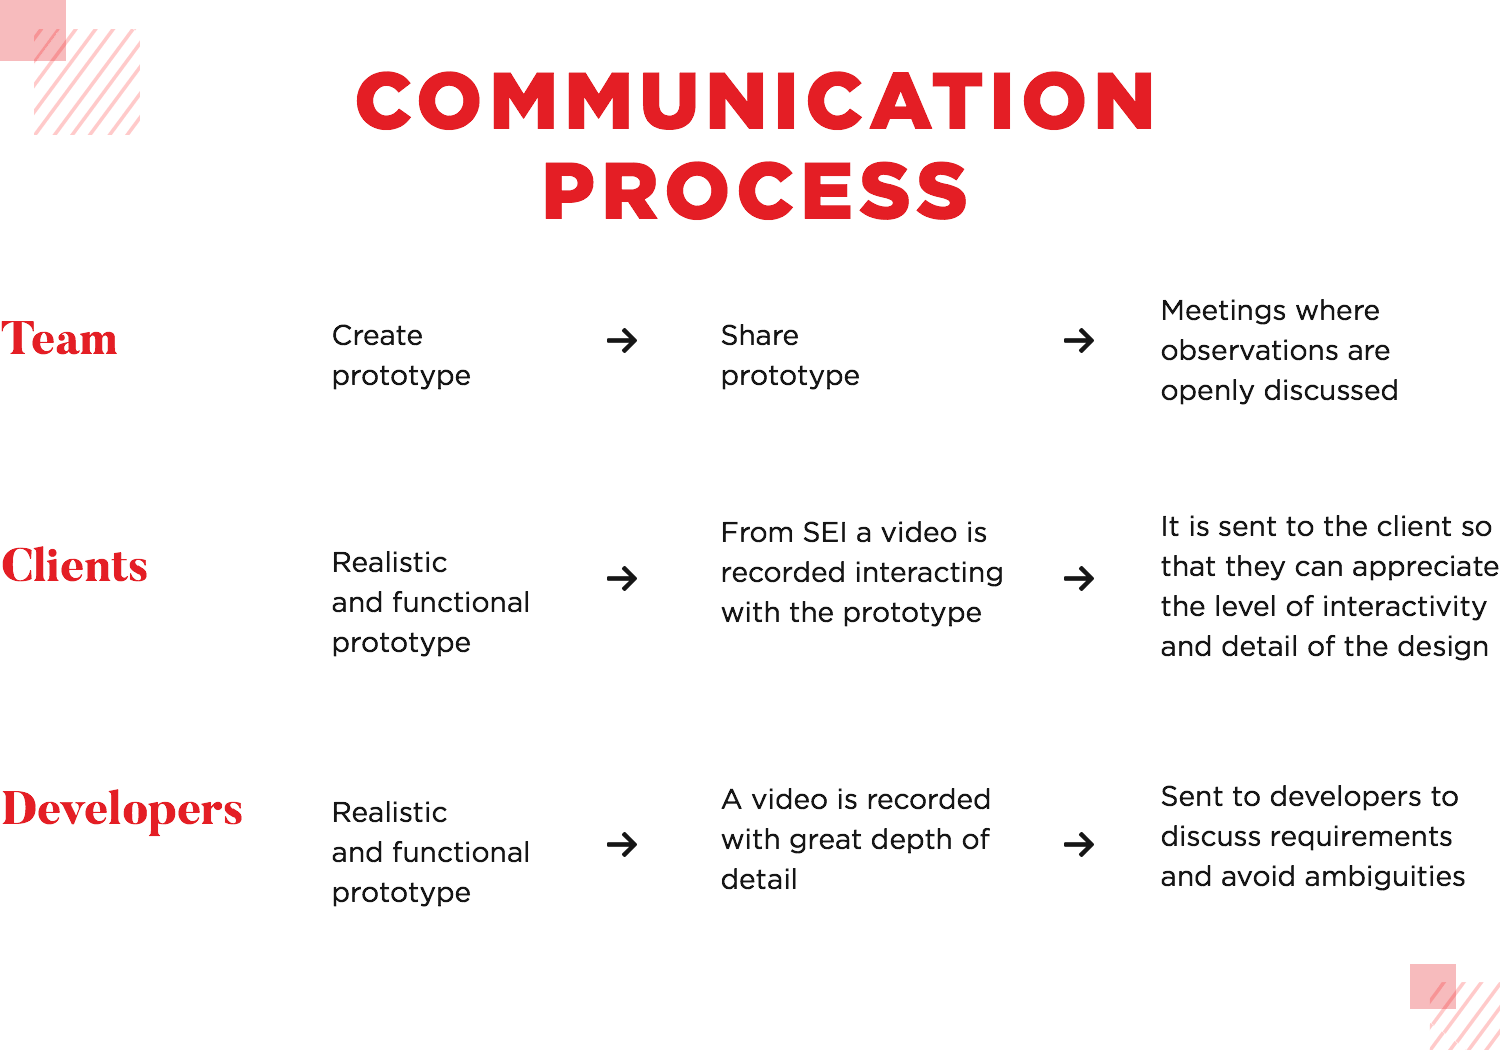 how SEI uses prototypes in their communication process